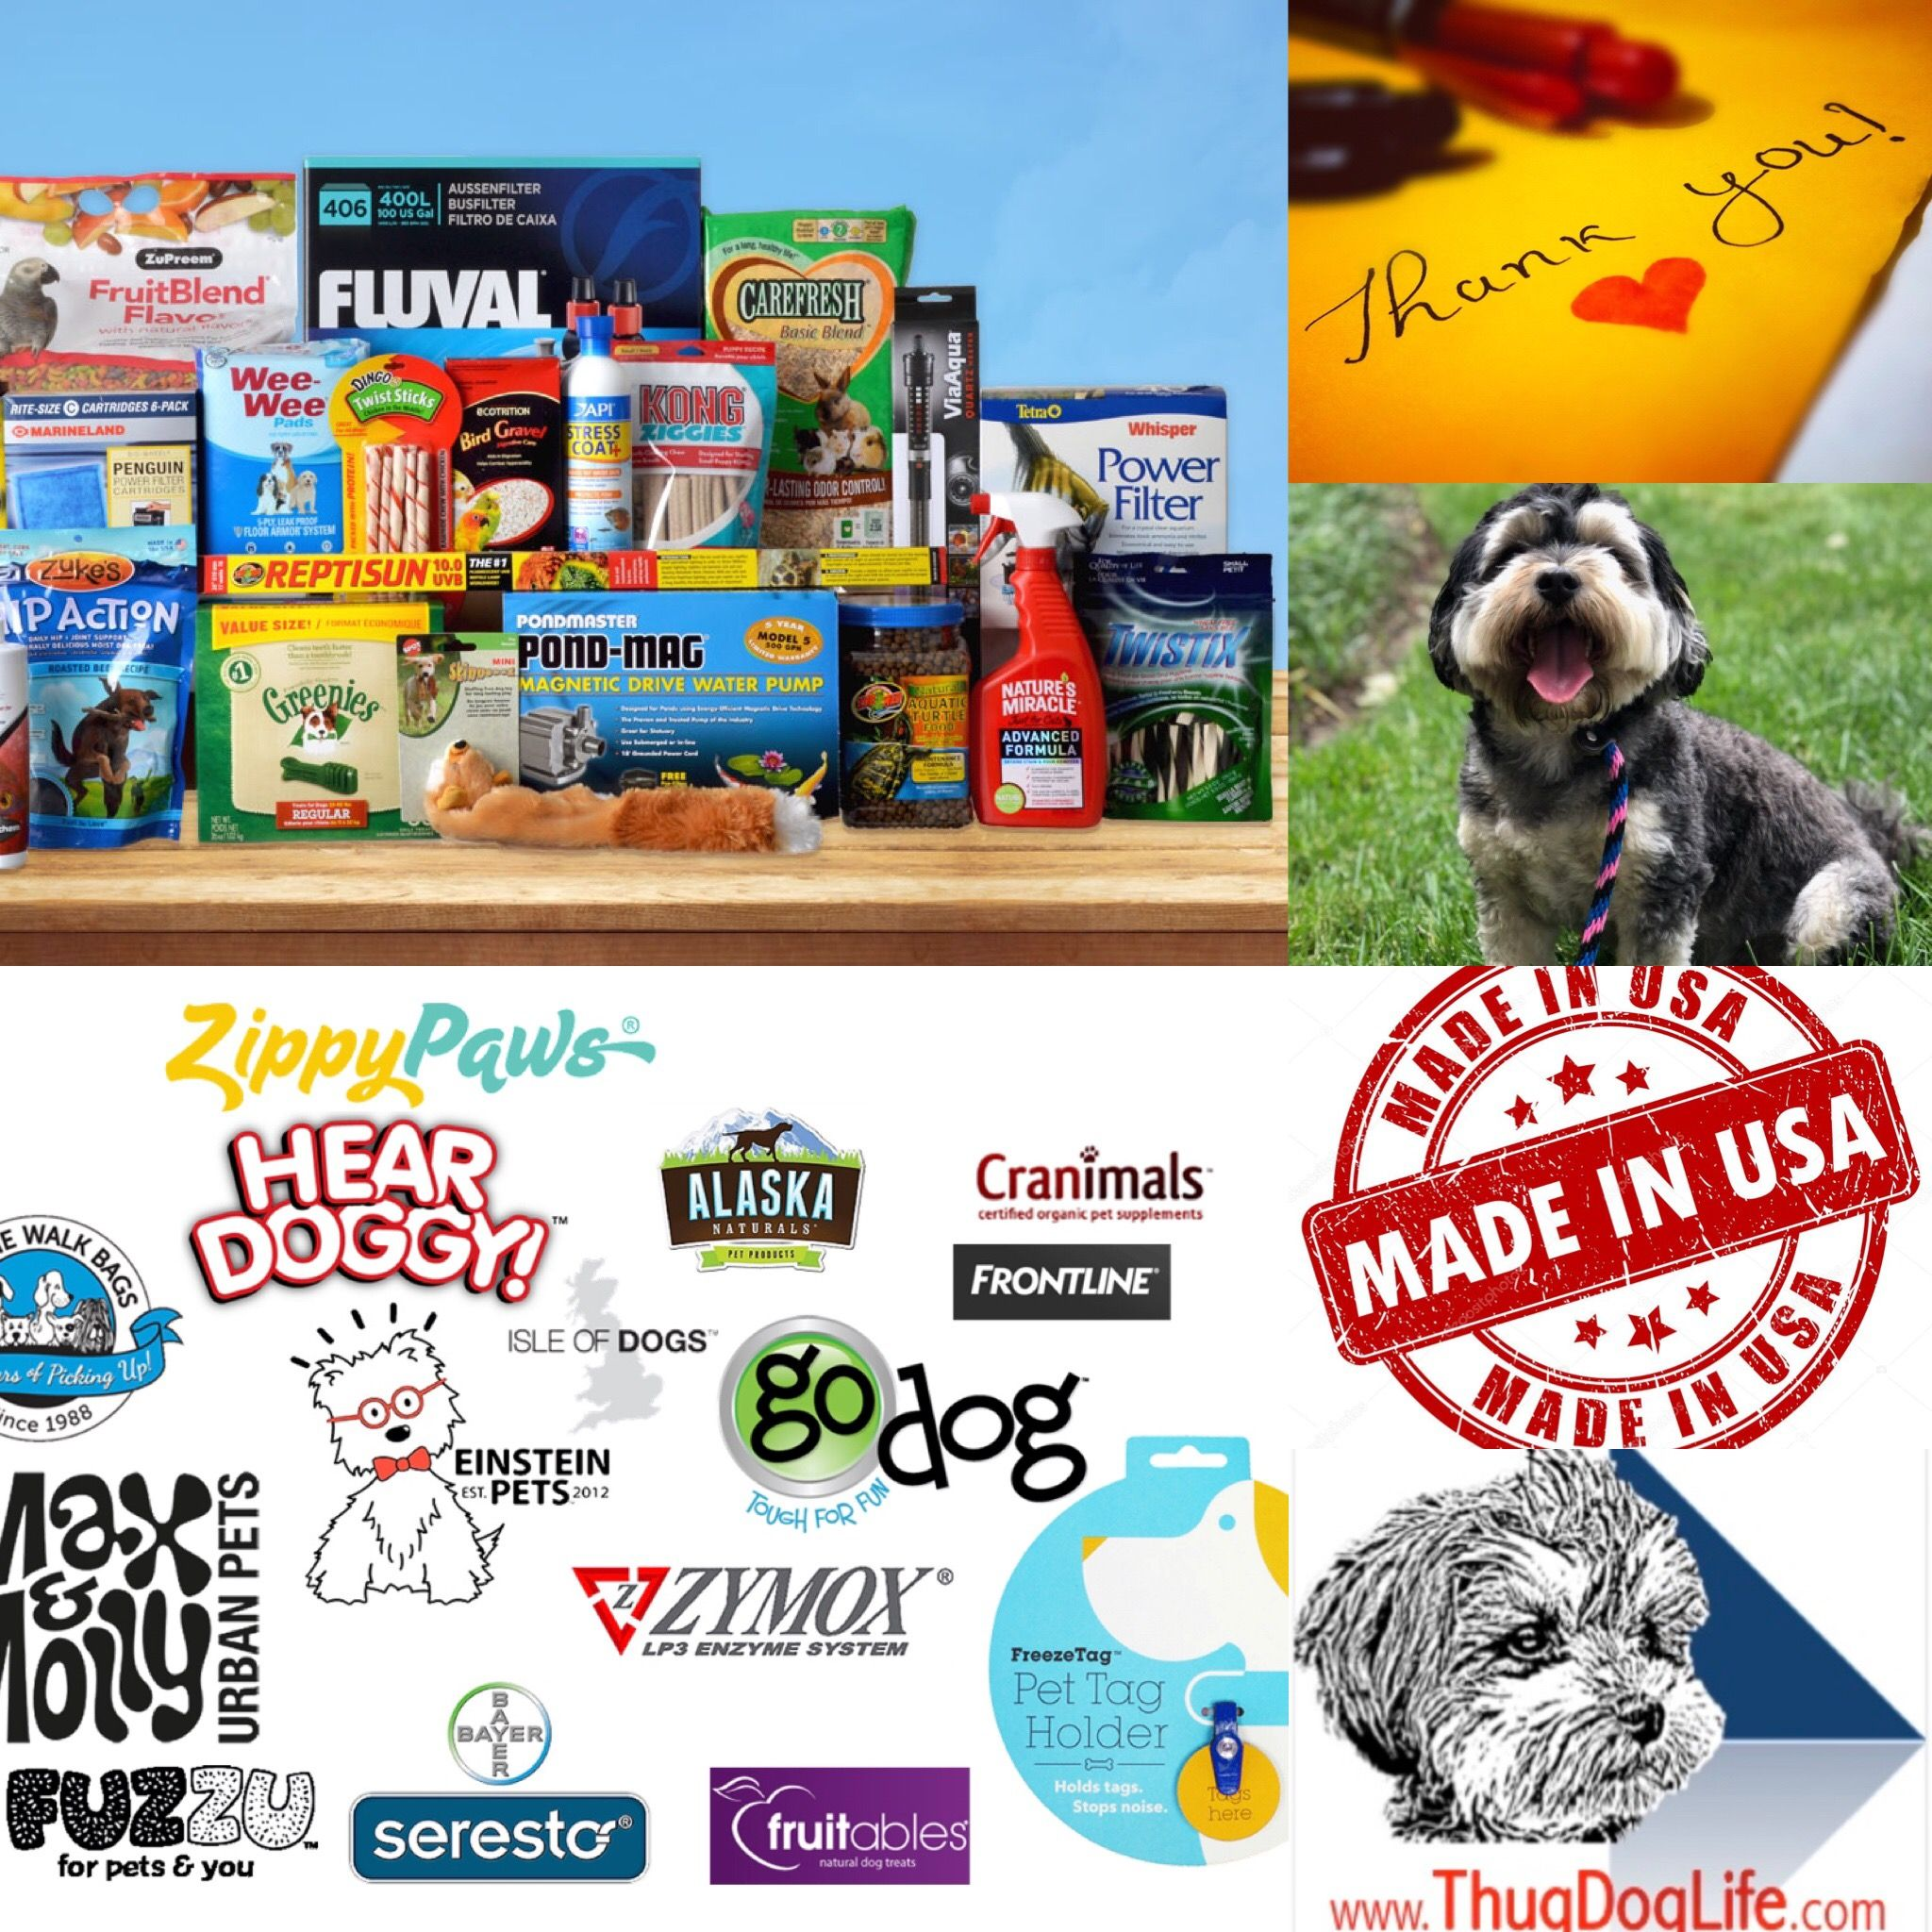 A sample of products, trusted brands, and our fearless